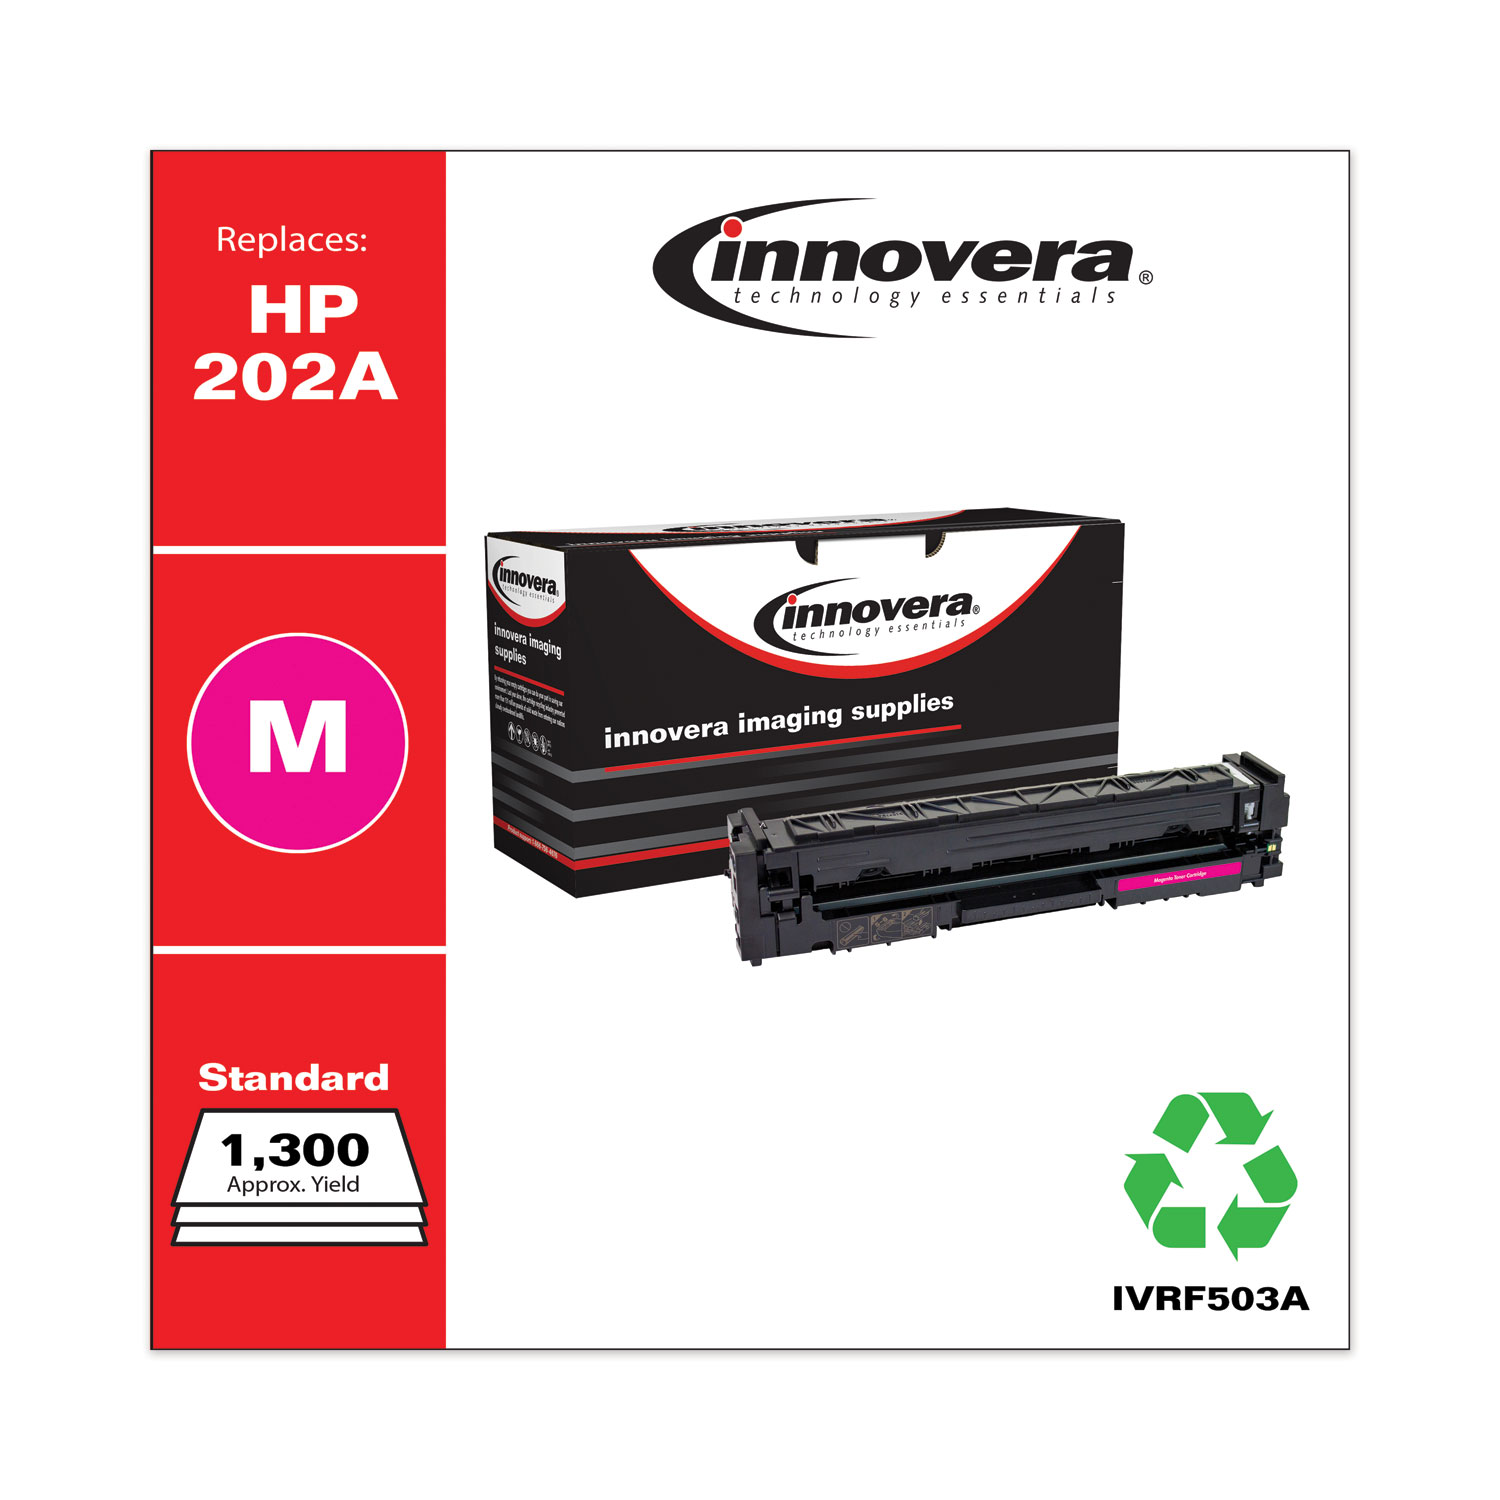 Remanufactured Magenta Toner, Replacement for HP 202A (CF503A), 1,300 Page-Yield IVRF503A